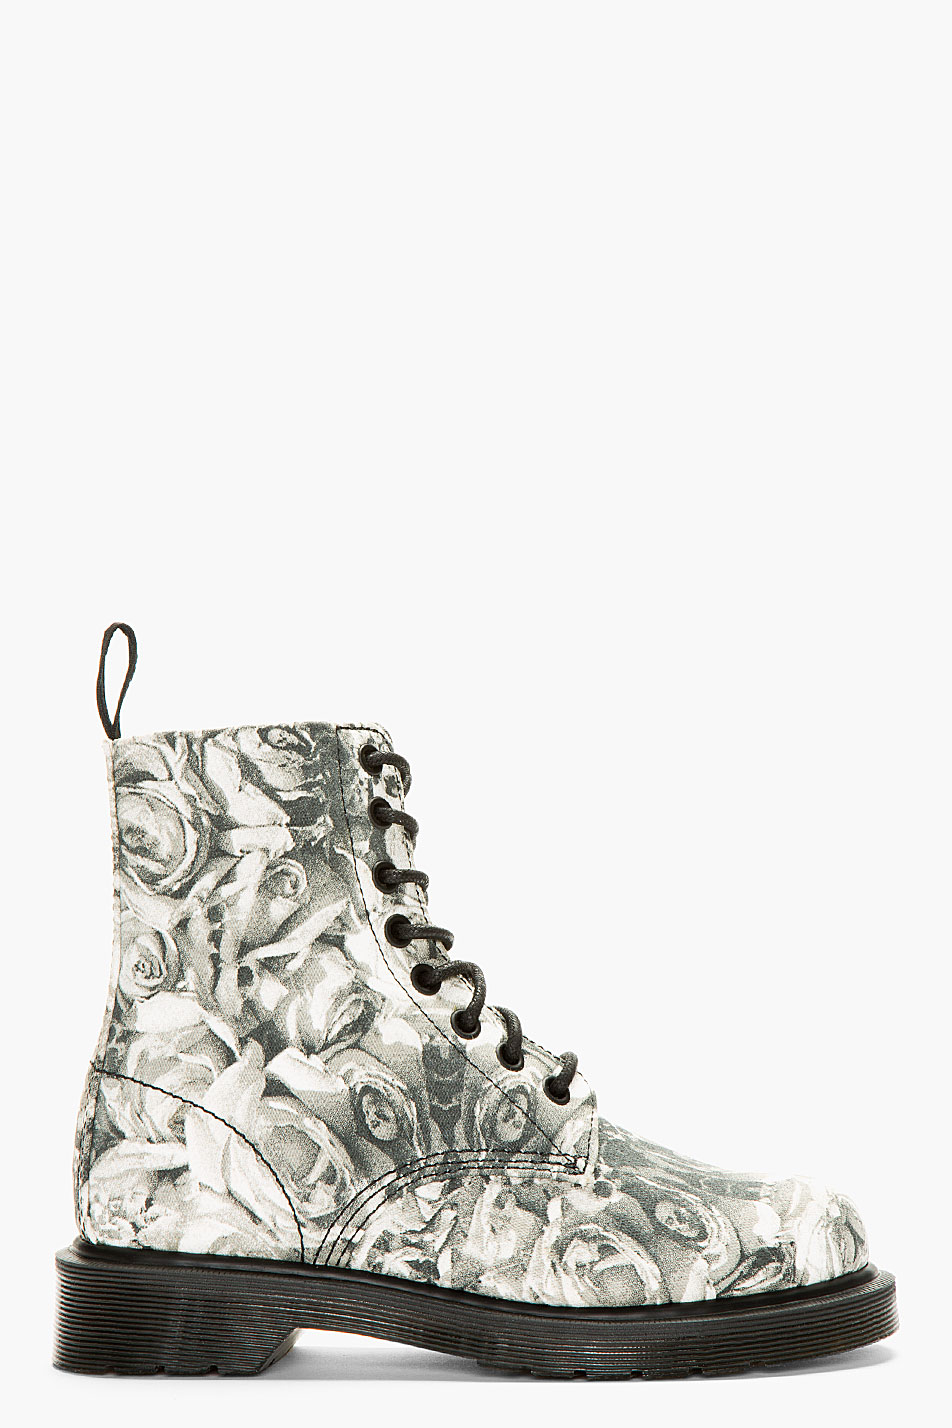 Generous white flower doc martens ideas wedding and flowers cute white flower doc martens ideas wedding and flowers ispiration mightylinksfo Image collections